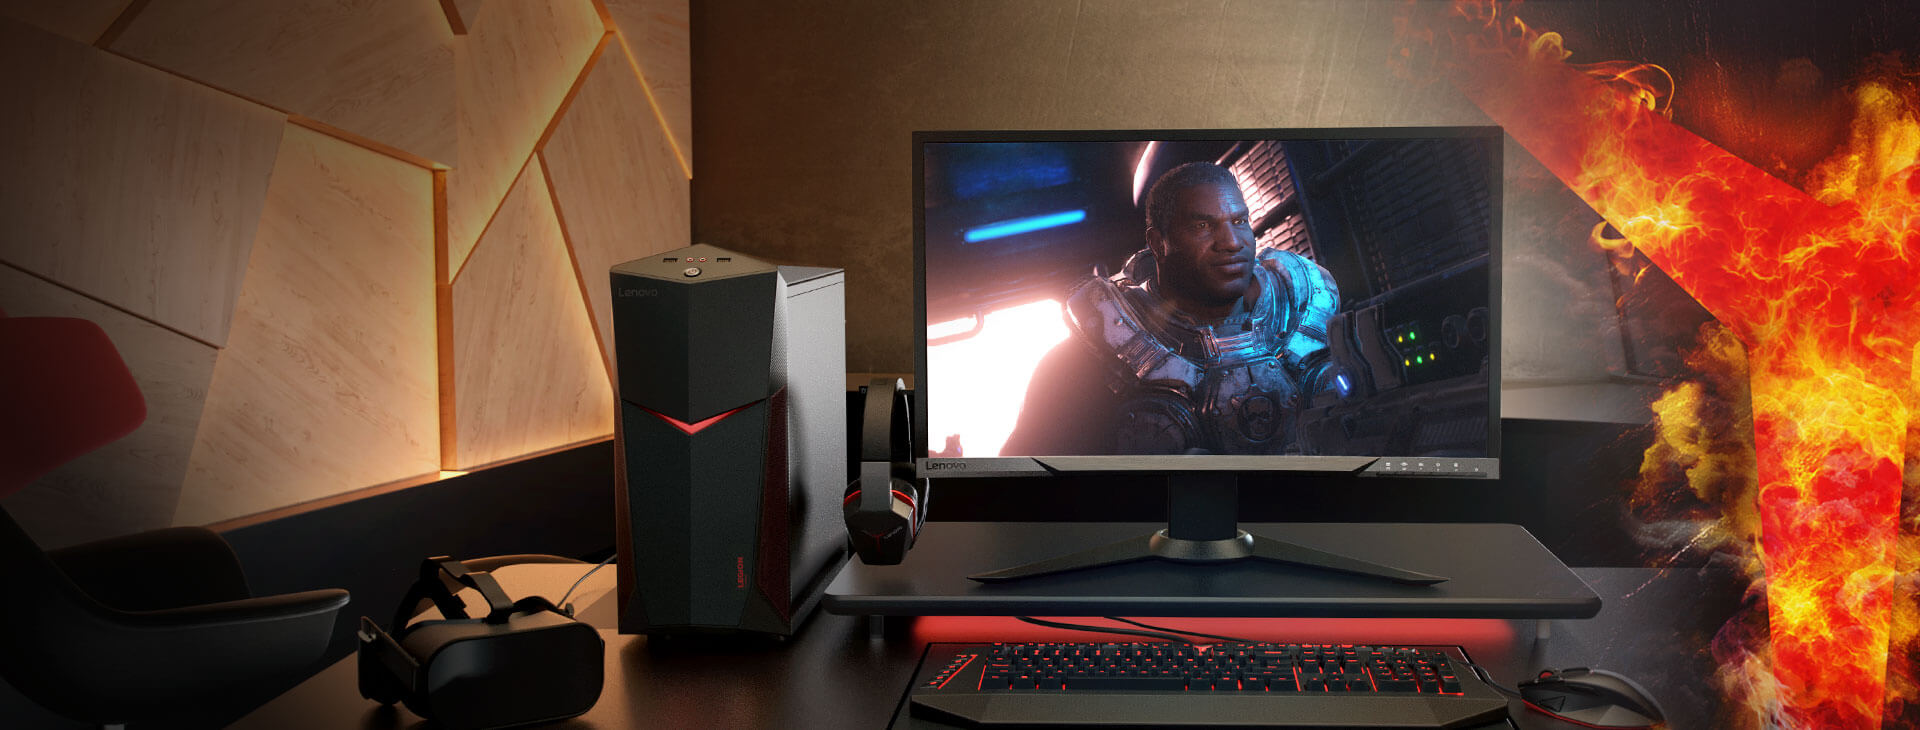 Игровой ПК Lenovo Legion Y520 Tower